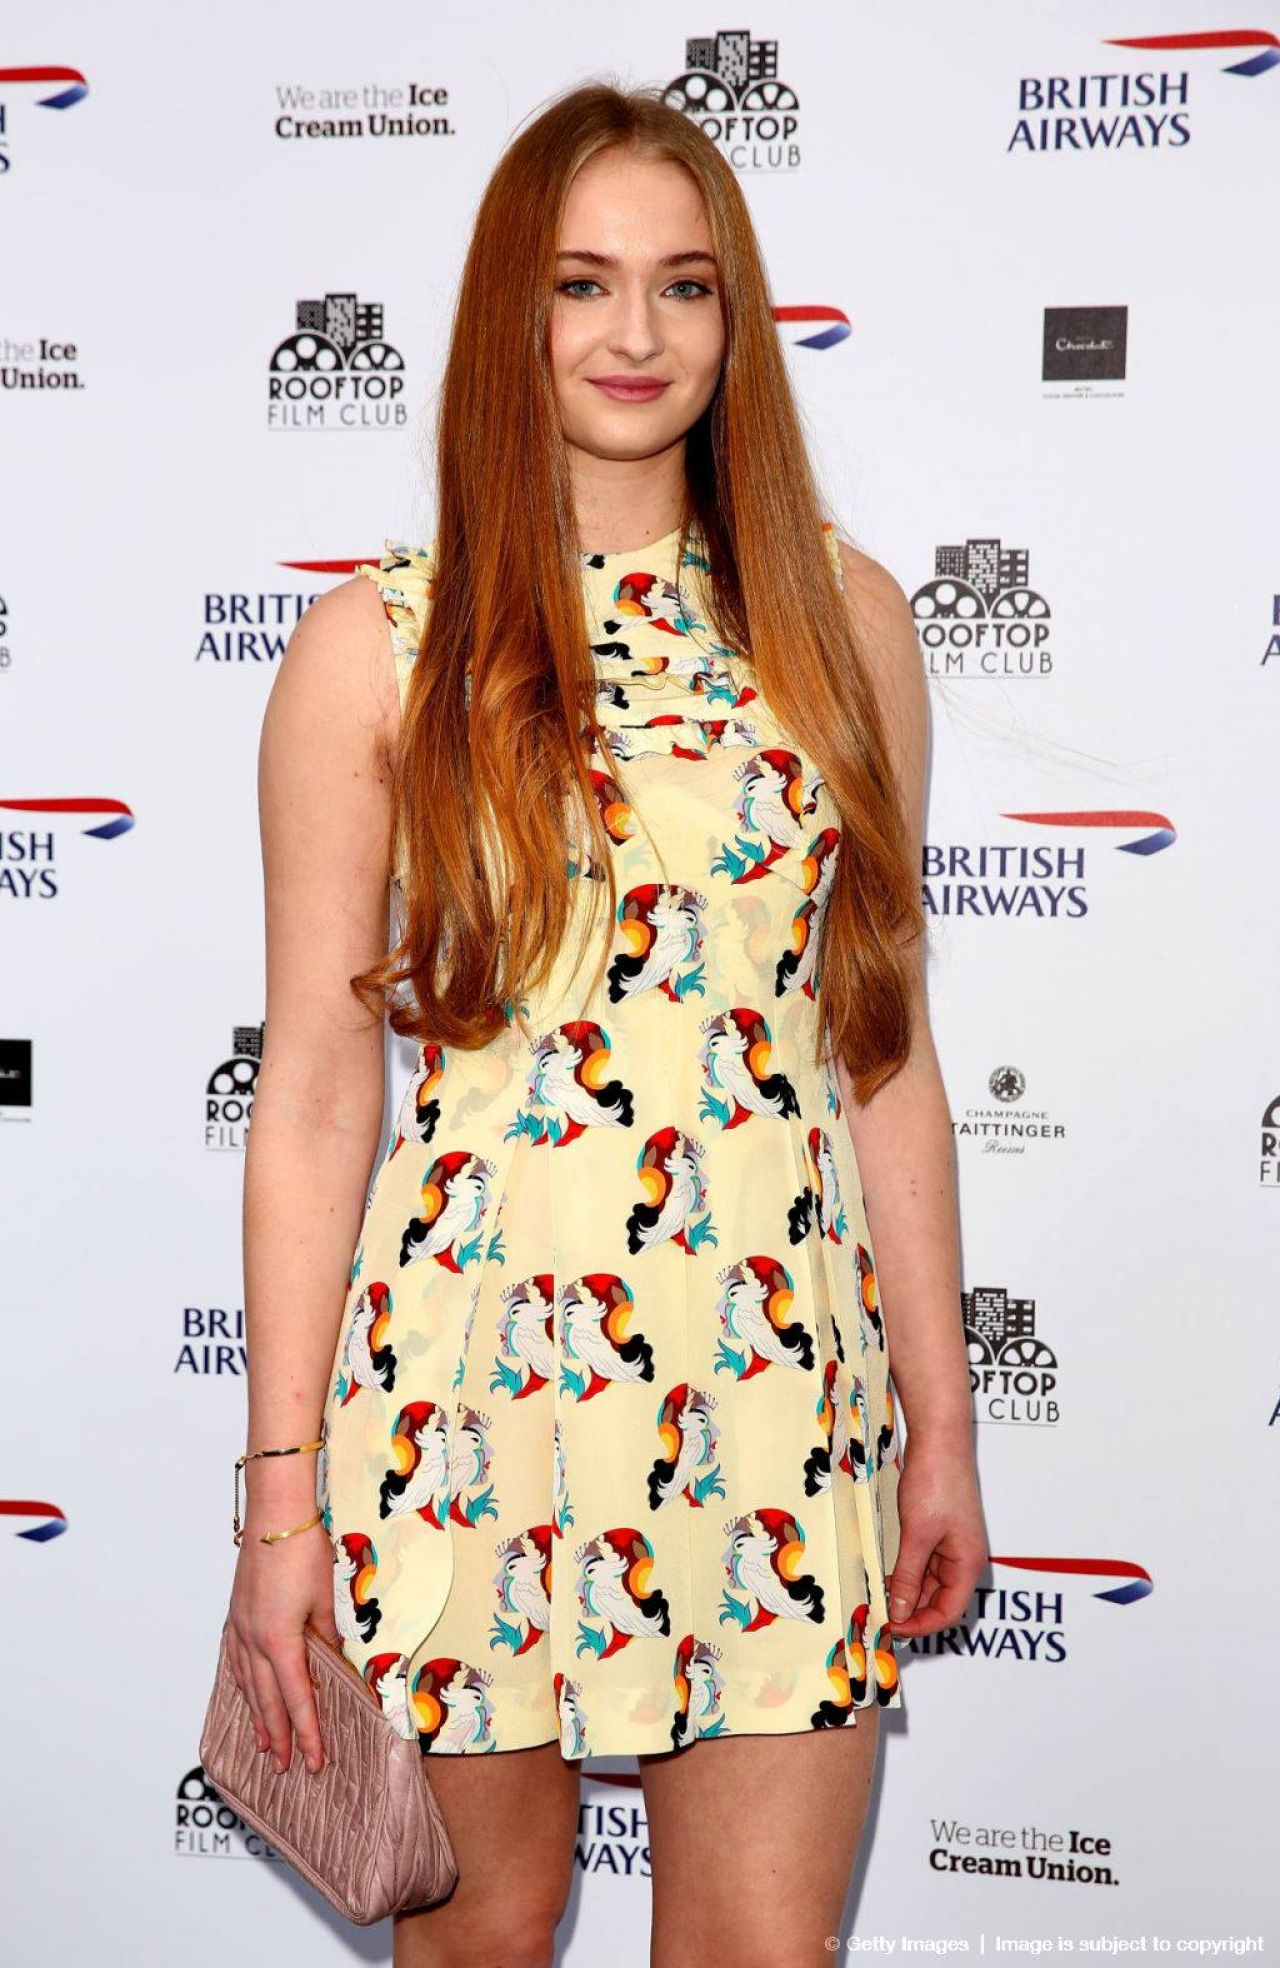 Sophie Turner (GoT) Rooftop Film Club Event + Pradasphere in London - April 2014